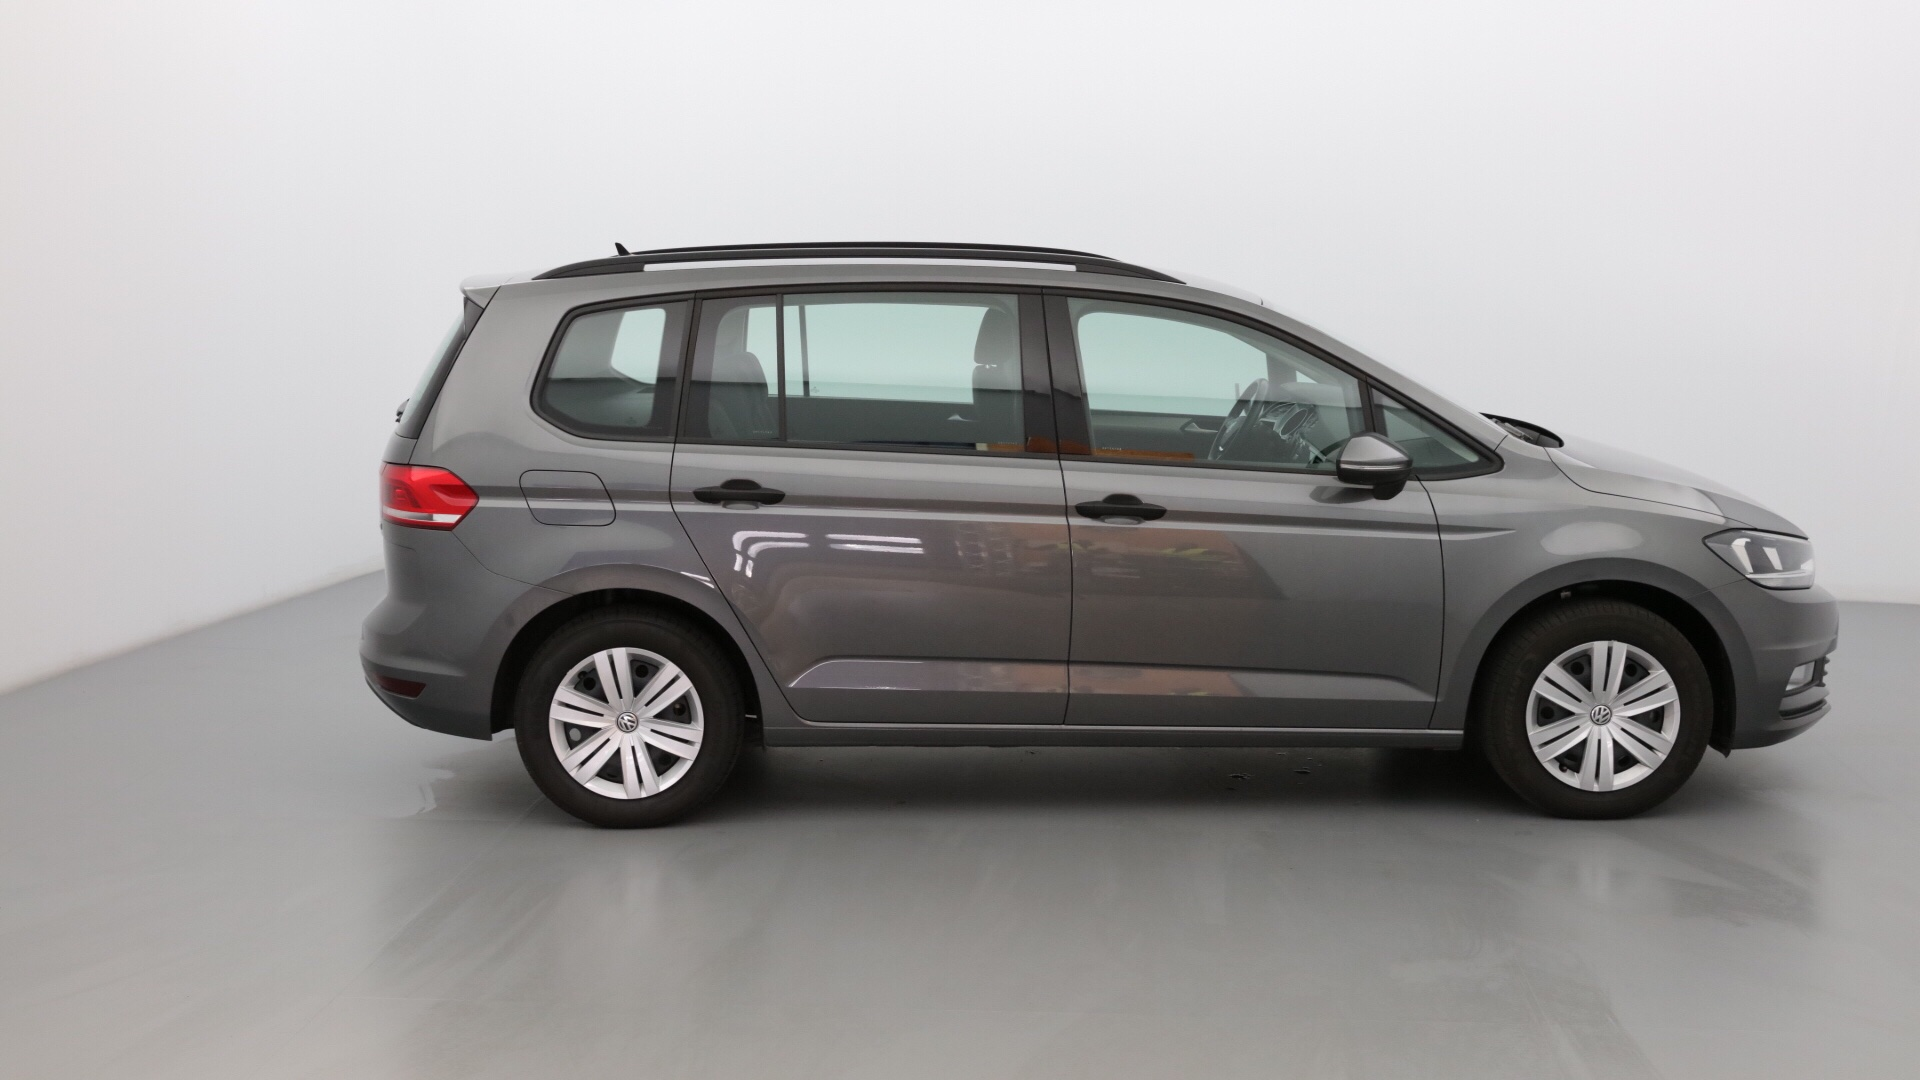 VOLKSWAGEN TOURAN 1.6 TDI 110CH BLUEMOTION TECHNOLOGY FAP TRENDLINE BUSINESS 5 PLACES - Miniature 4